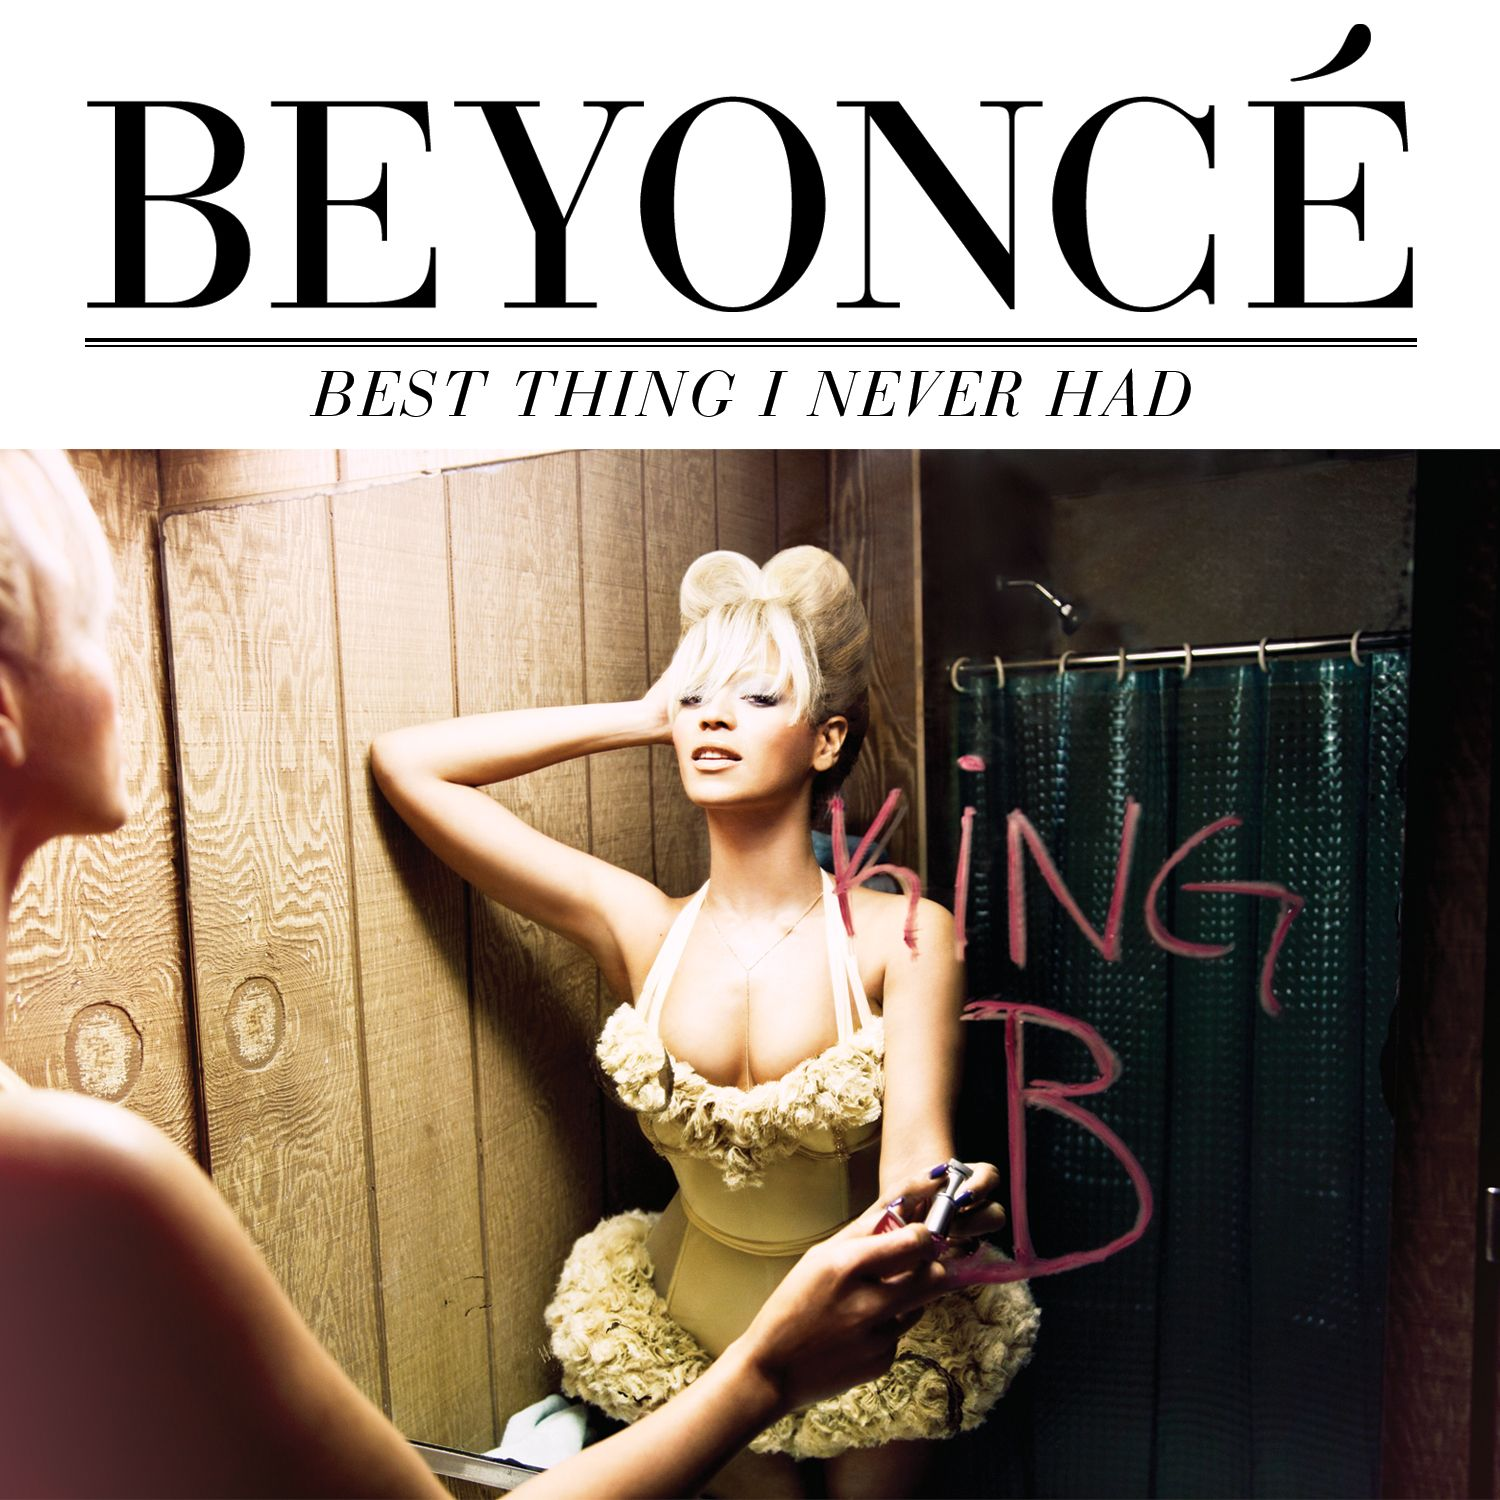 http://3.bp.blogspot.com/-18GZGWYKov0/TejR_KRA68I/AAAAAAAAAEo/hmKClvSC4X4/s1600/Beyonc%25C3%25A9-Best-Thing-I-Never-Had-Official-Single-Cover.jpg